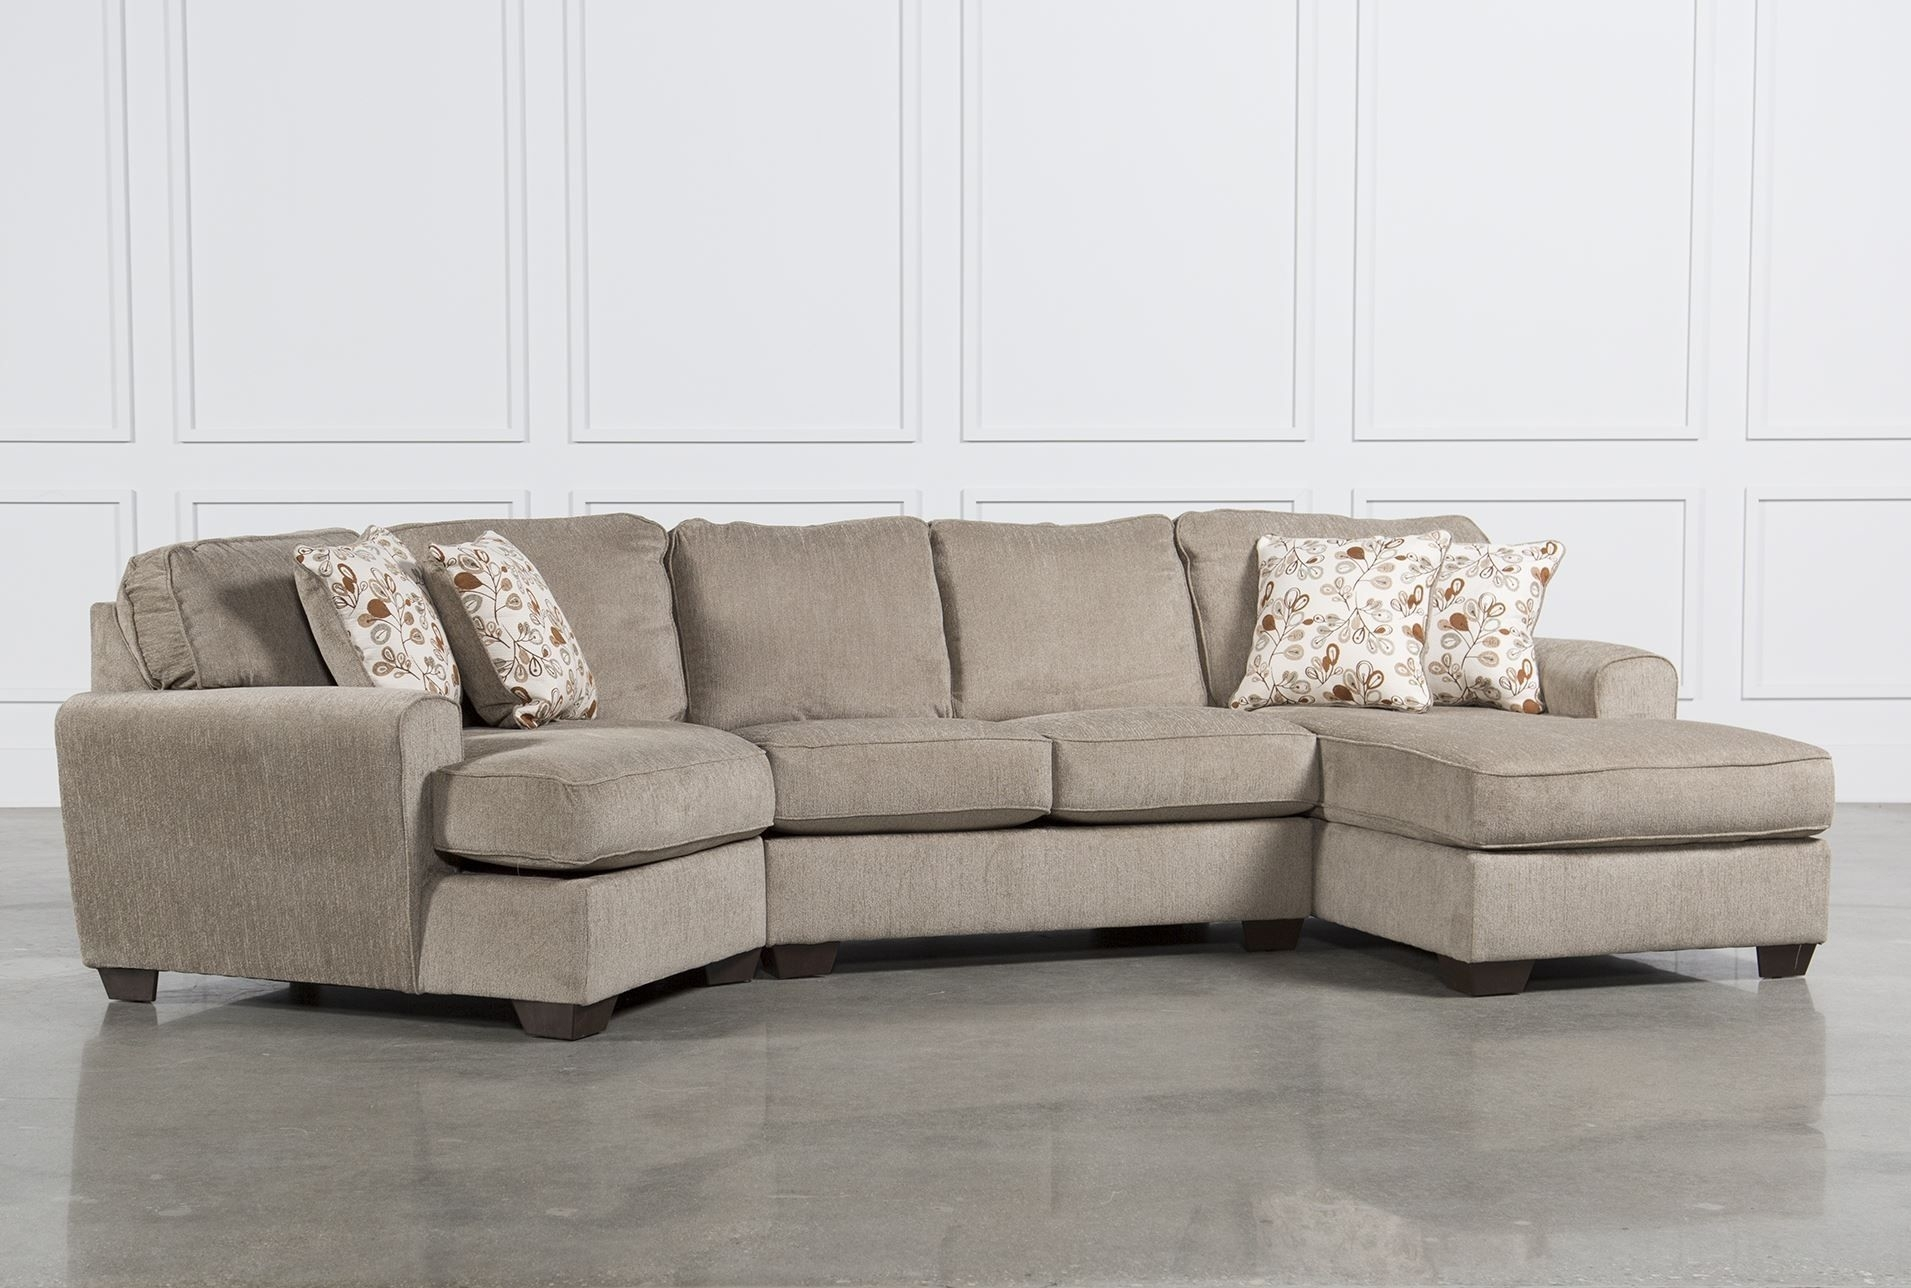 Microfiber Sectional Sofa With Chaise And Cuddle – Sectional Sofas Within Sierra Down 3 Piece Sectionals With Laf Chaise (View 23 of 25)